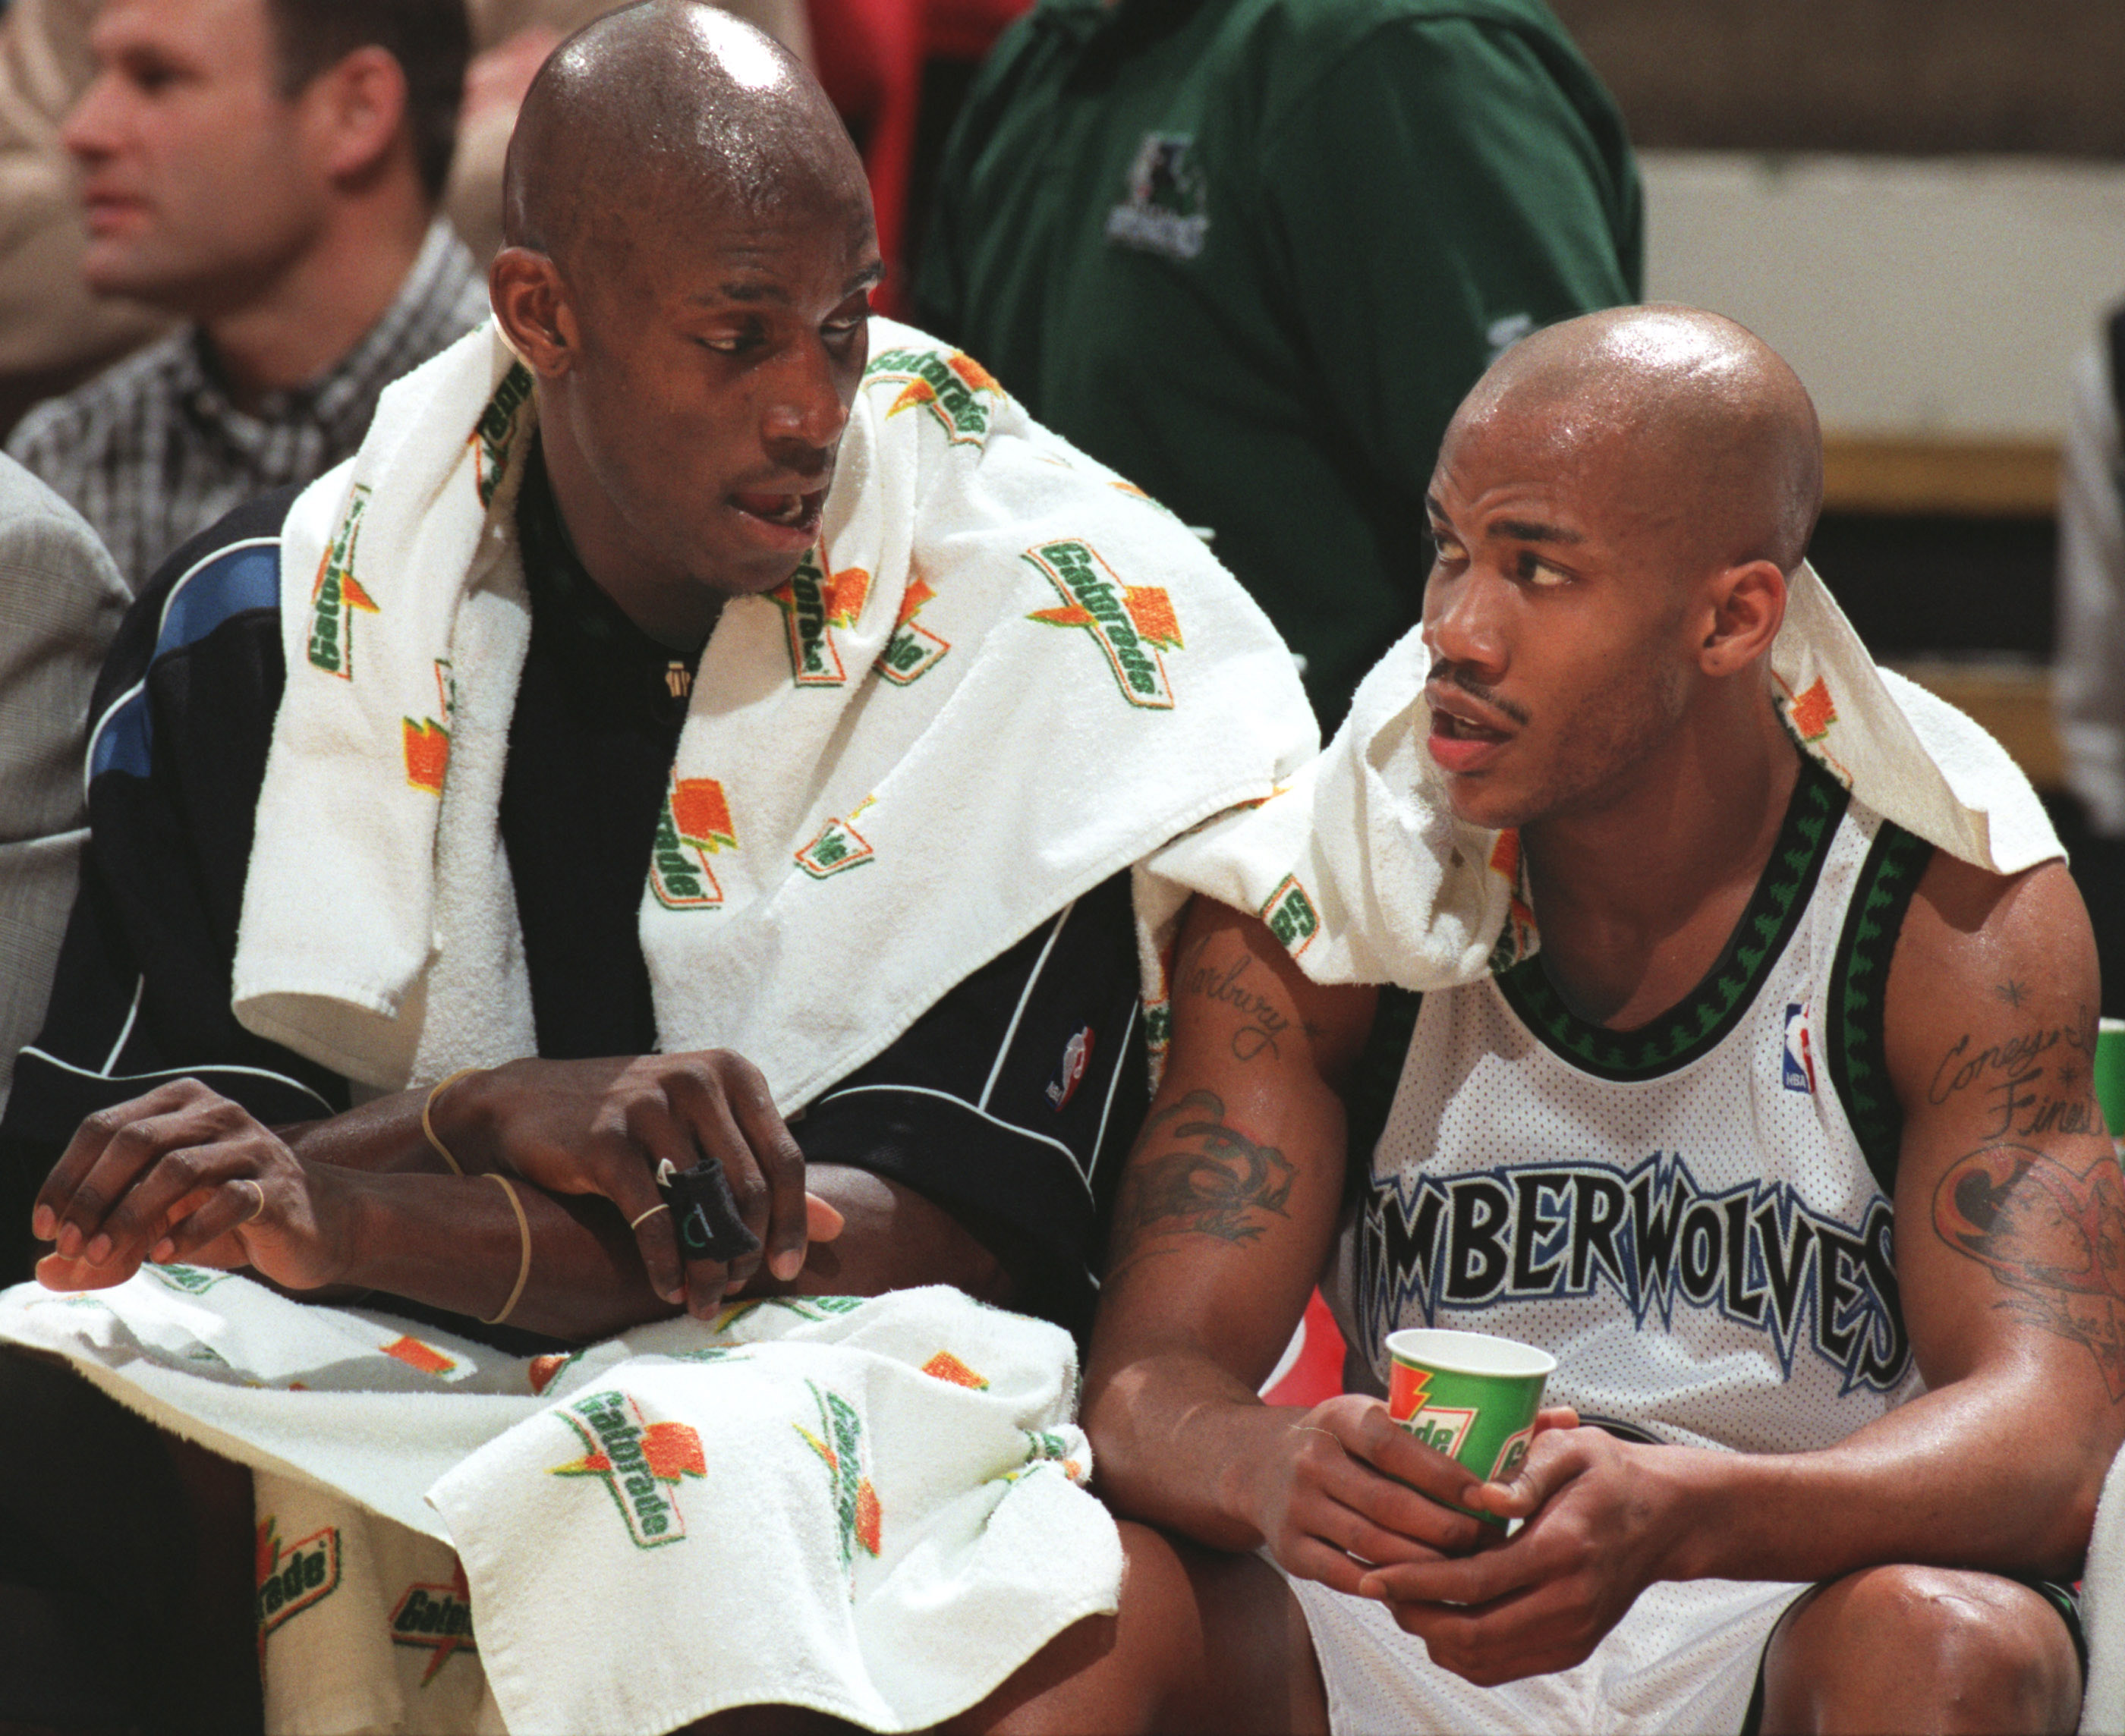 Timberwolves Kevin Garnett and Stephon Marbury